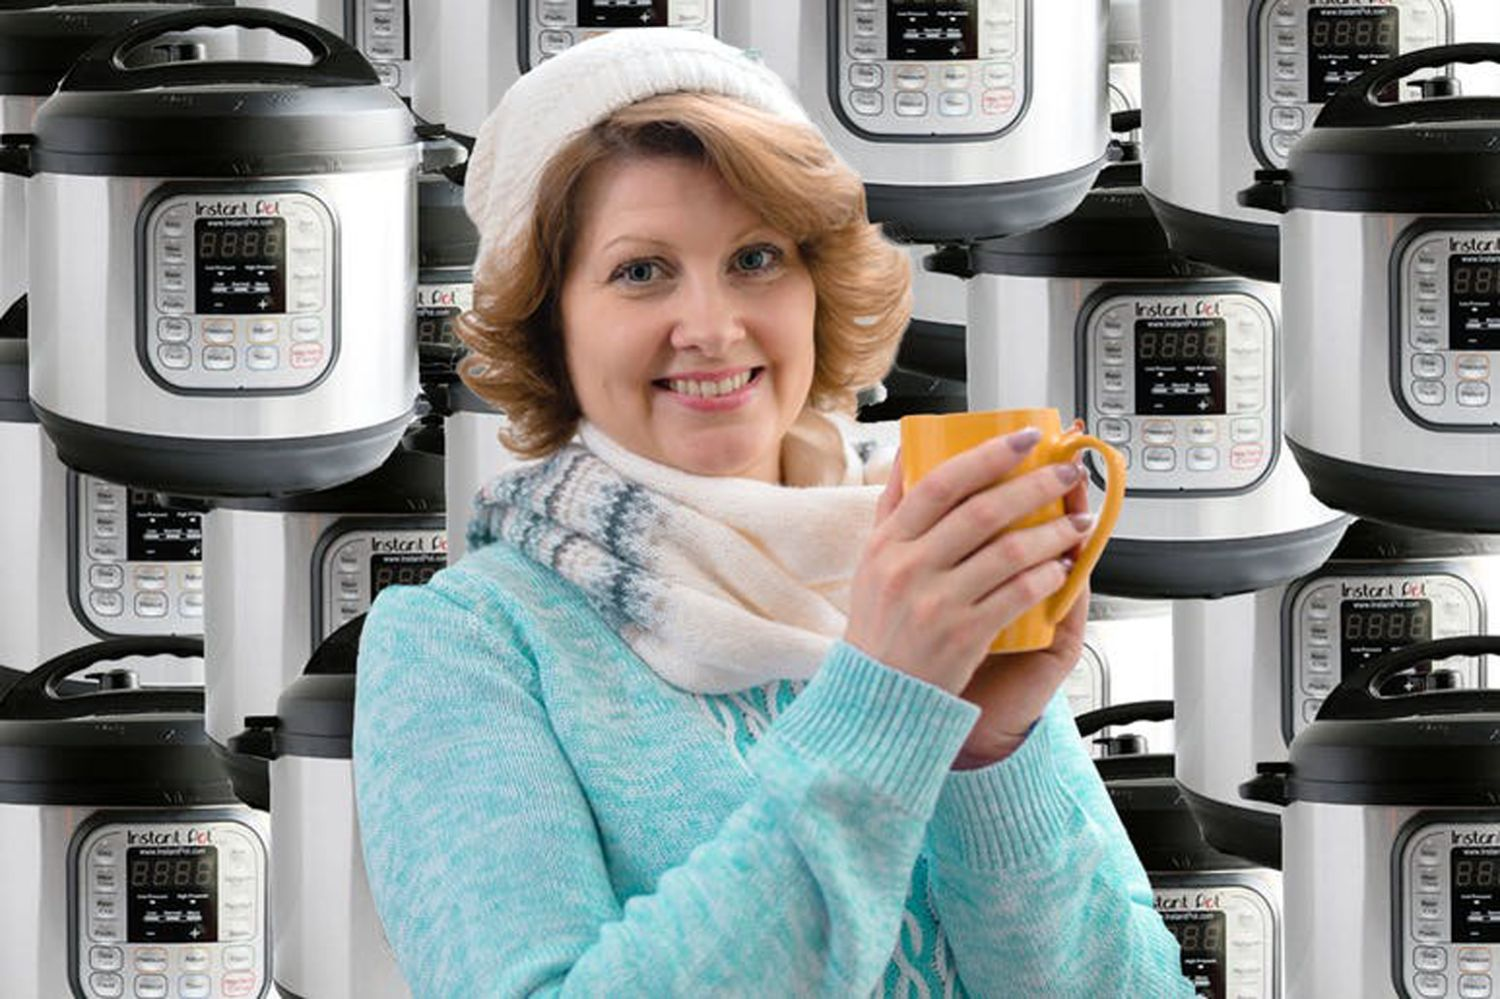 This Woman Is the Proud Owner of 107 Instant Pots | Kitchn